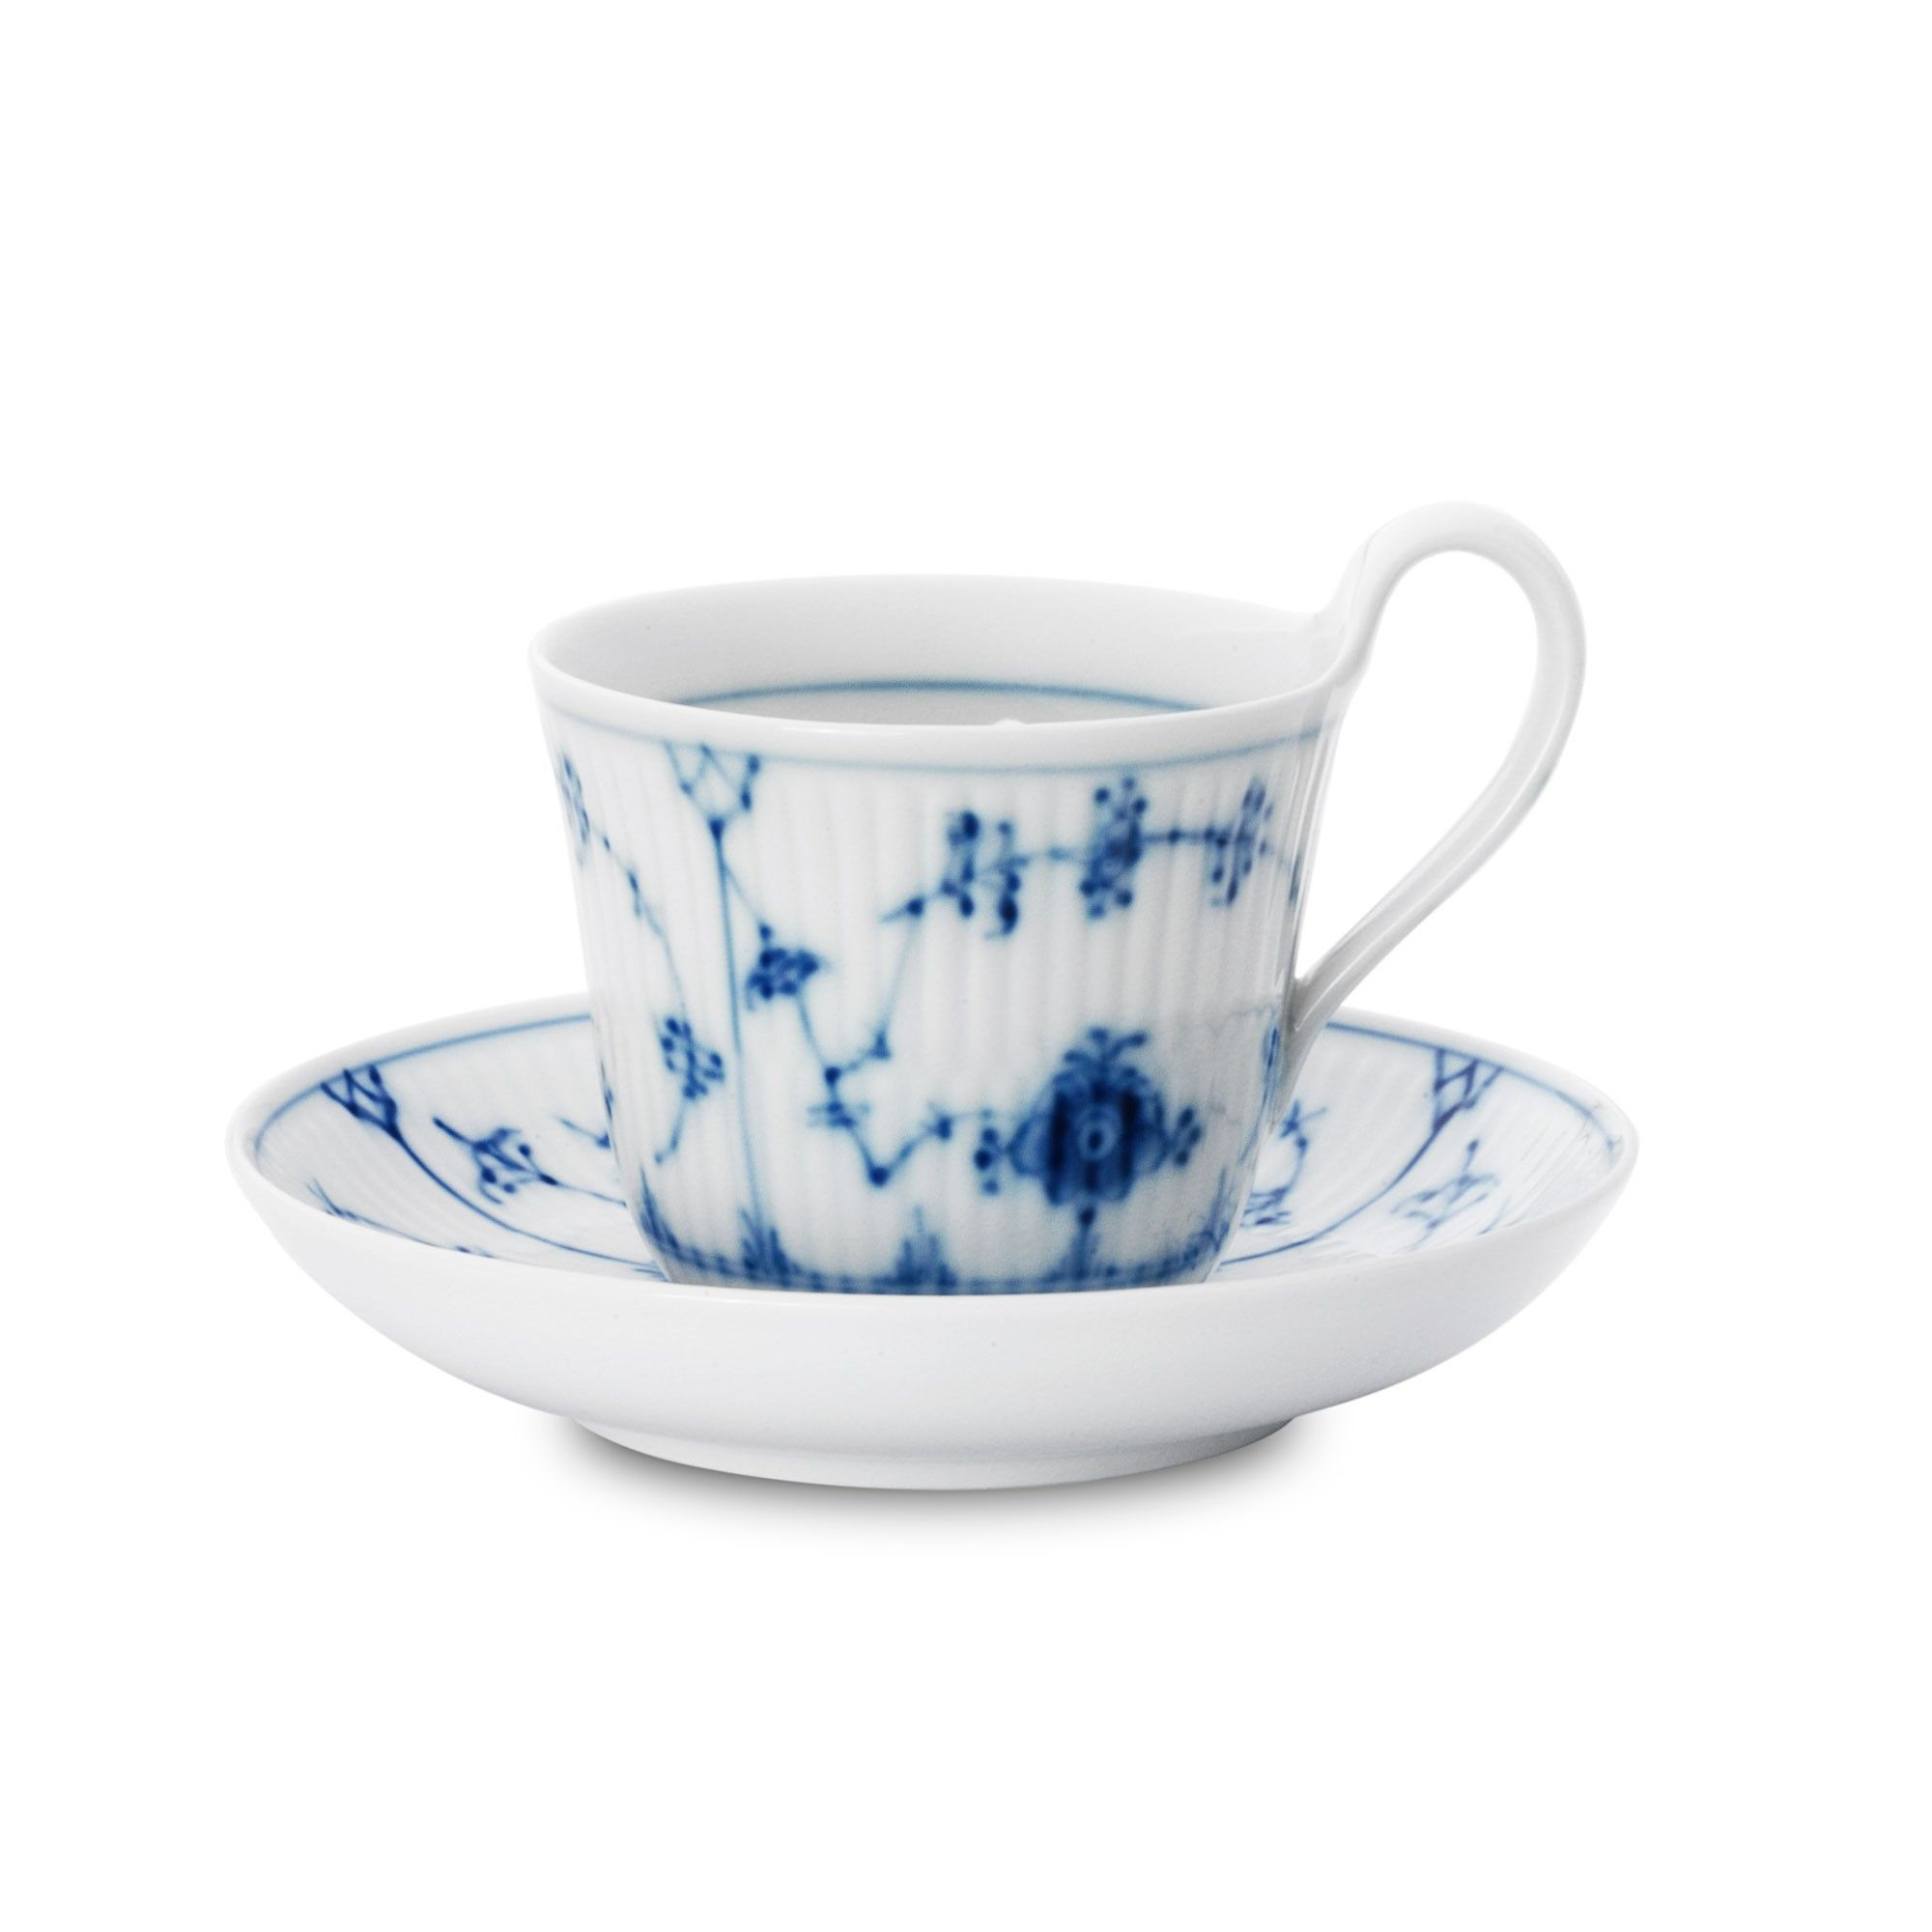 Blue Fluted Plain tea cup and saucer by Royal Copenhagen at Skandium. #royalcopenhagen #blueflutedplain #skandium